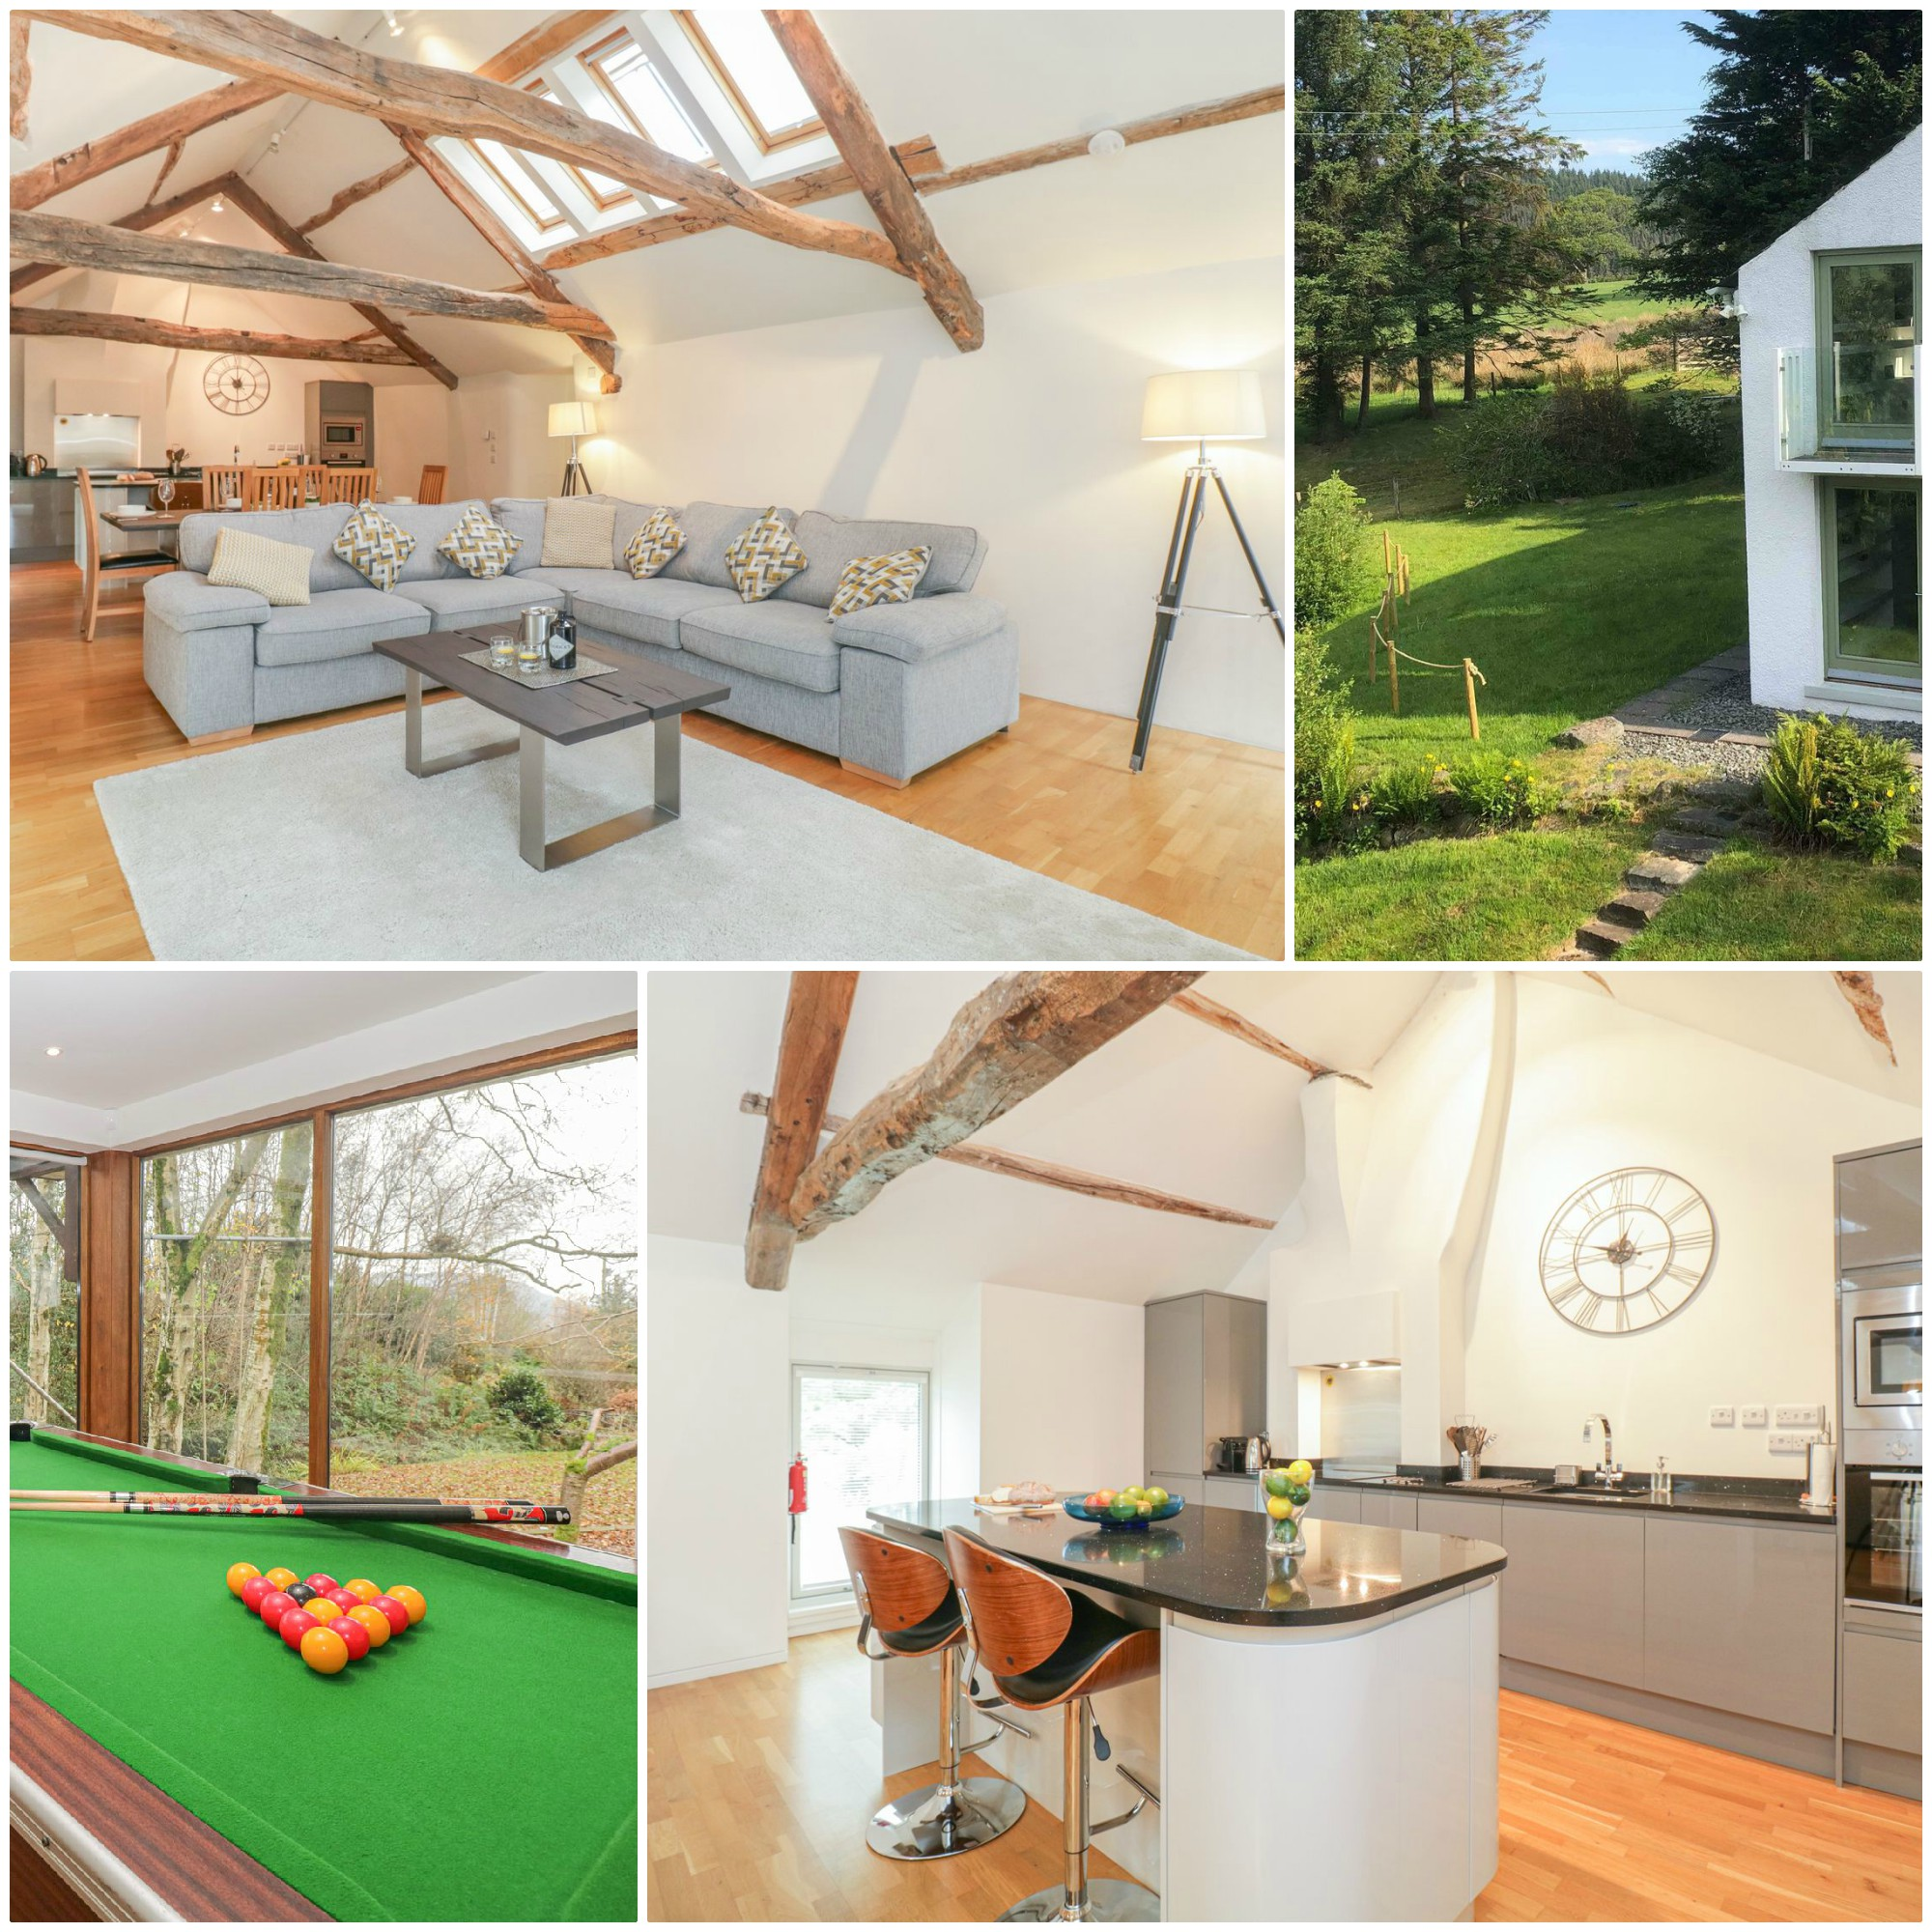 lovely rural self-catering cottage with a Games Room and Sonos speakers and high spec kitchen